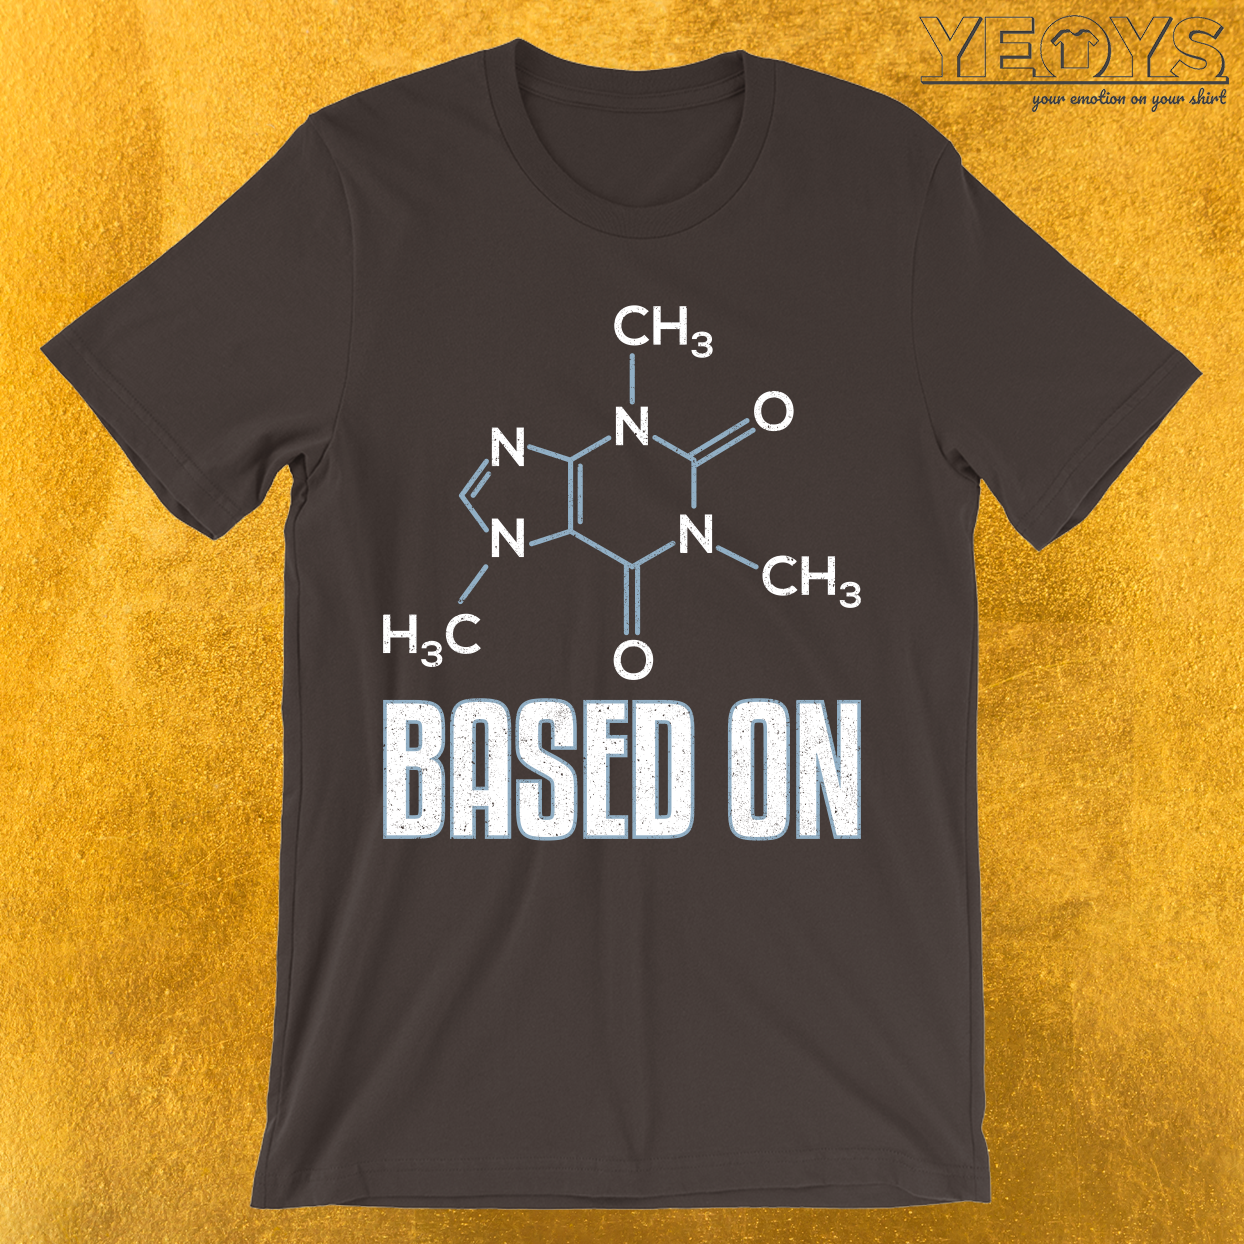 Based On Caffeine Molecule T-Shirt